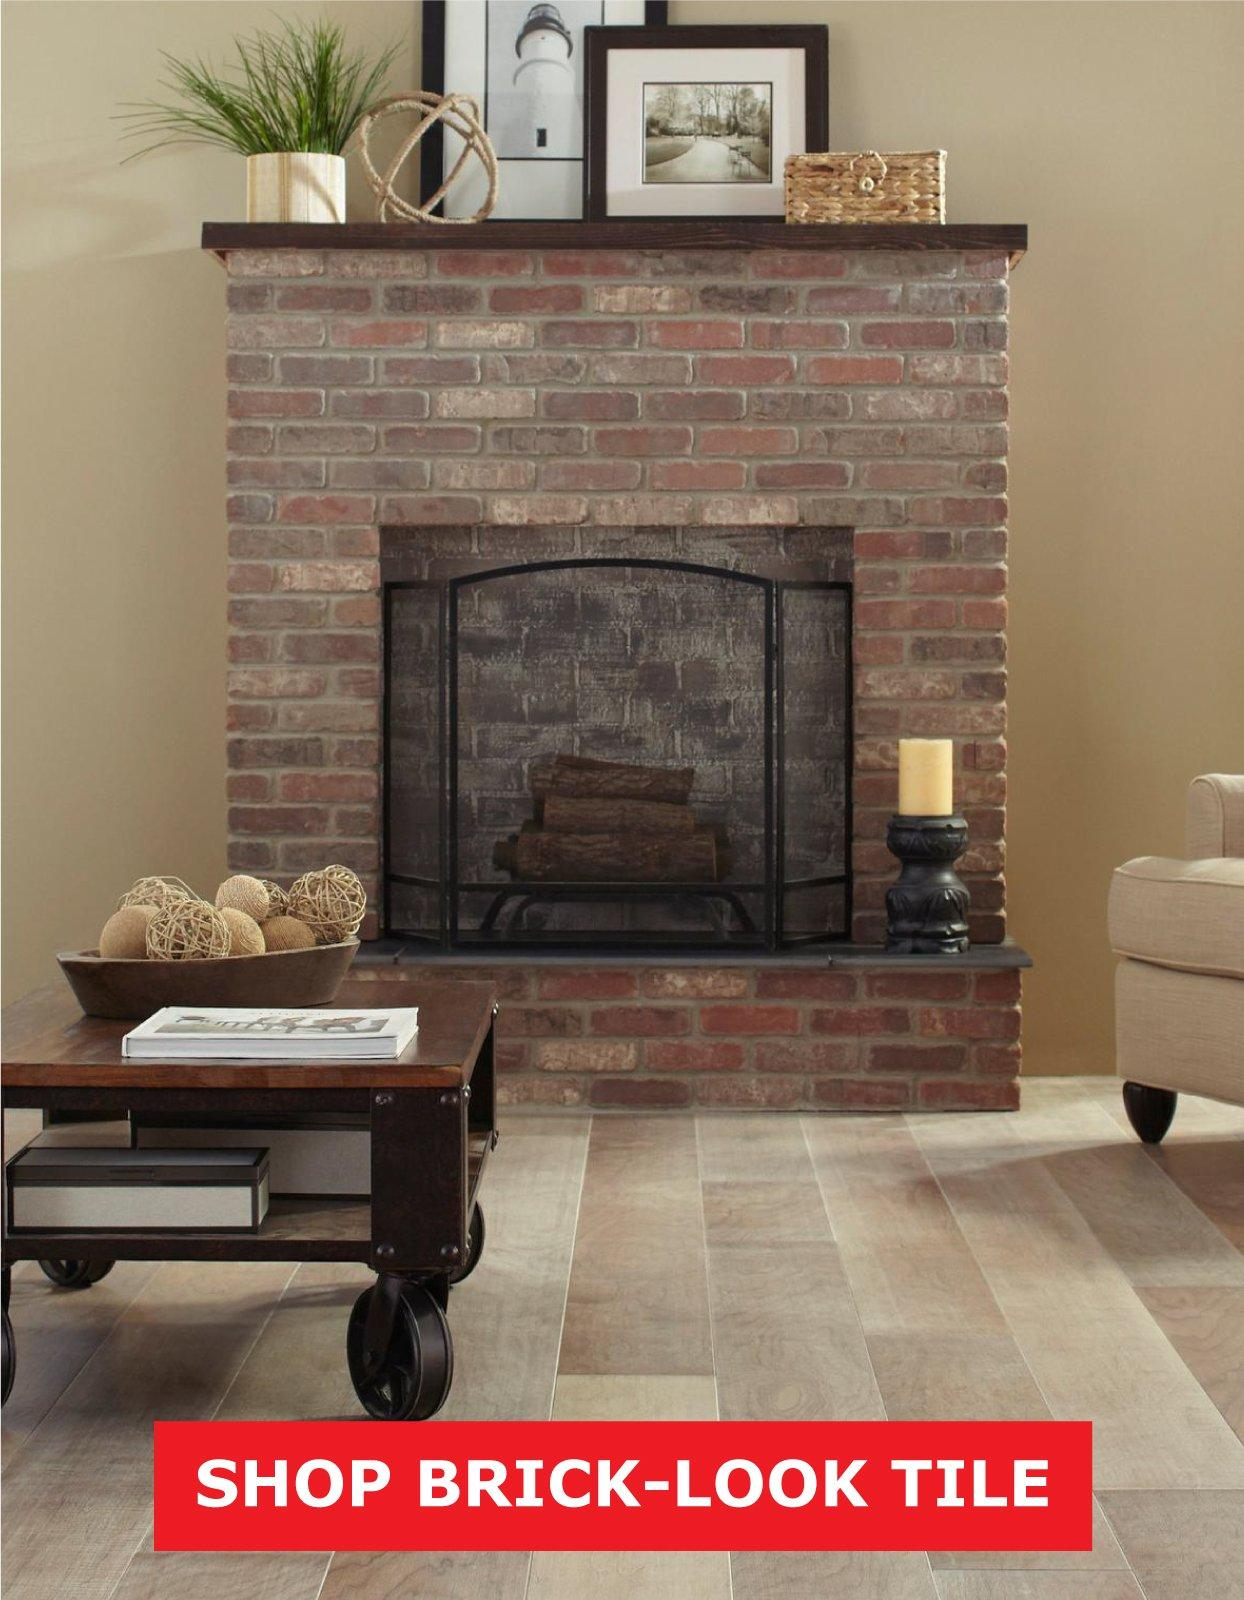 From Brick Look Or Contemporary Tile To Stone Ledger And Wood The Possibilities Are Endless